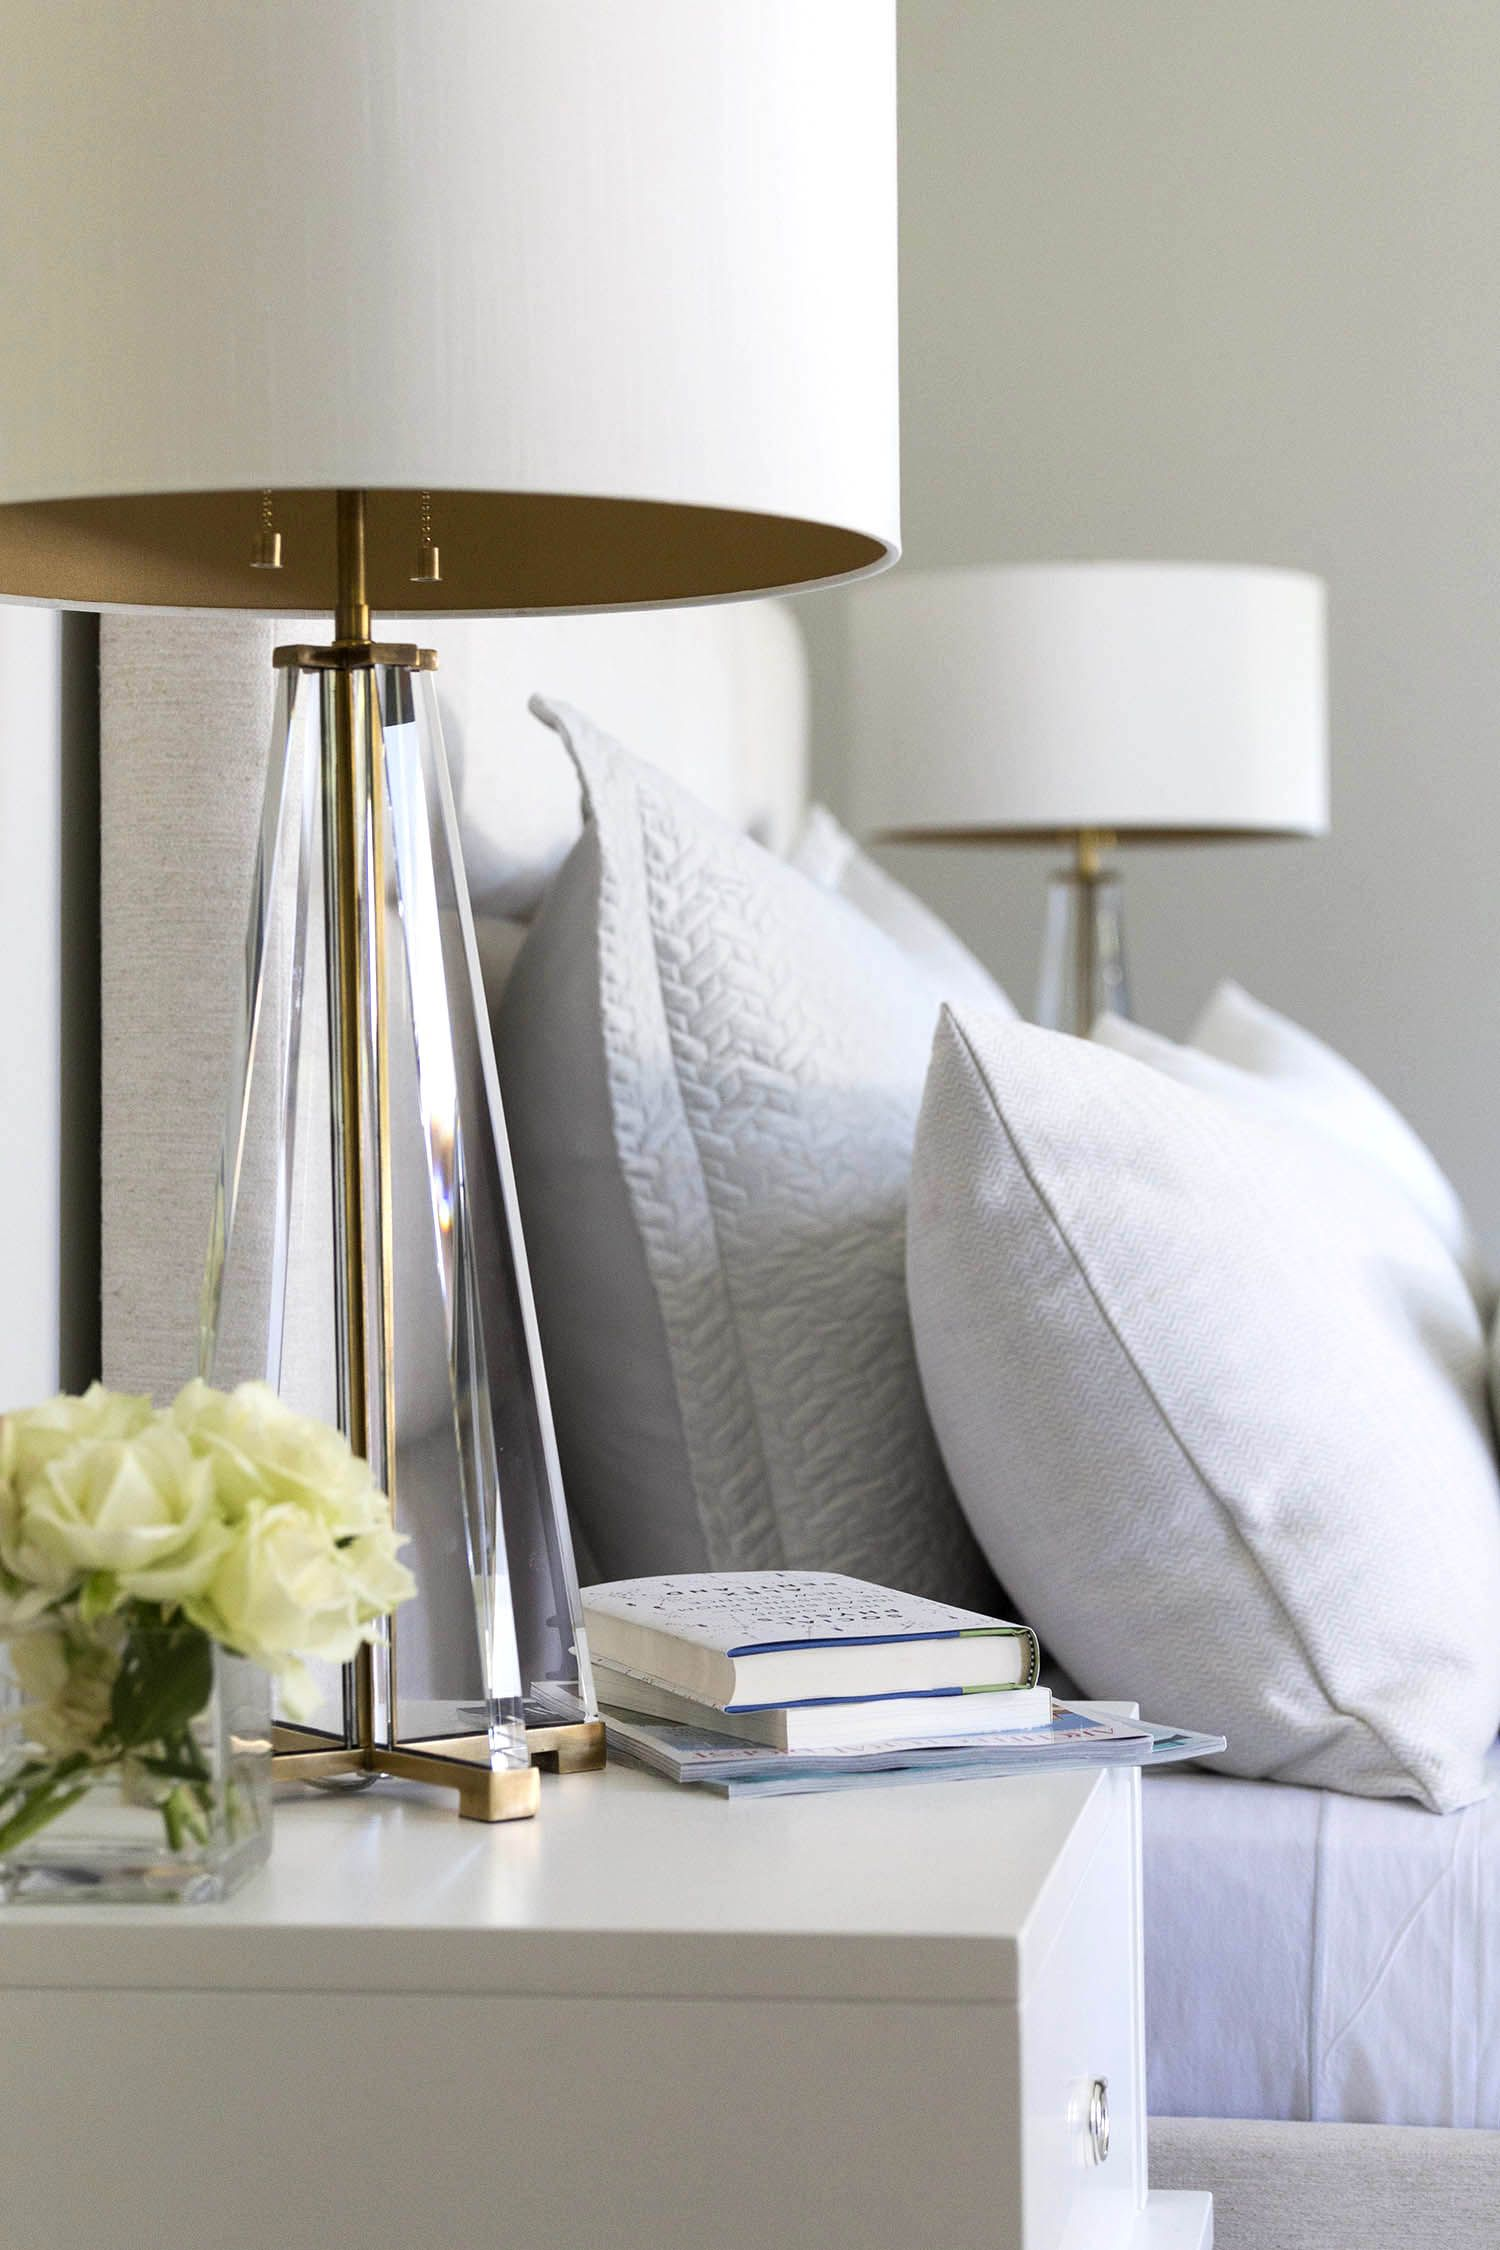 Merveilleux Table Lamp  Like. Mead Quin Designs An Elegant Family Home In Atherton | Rue